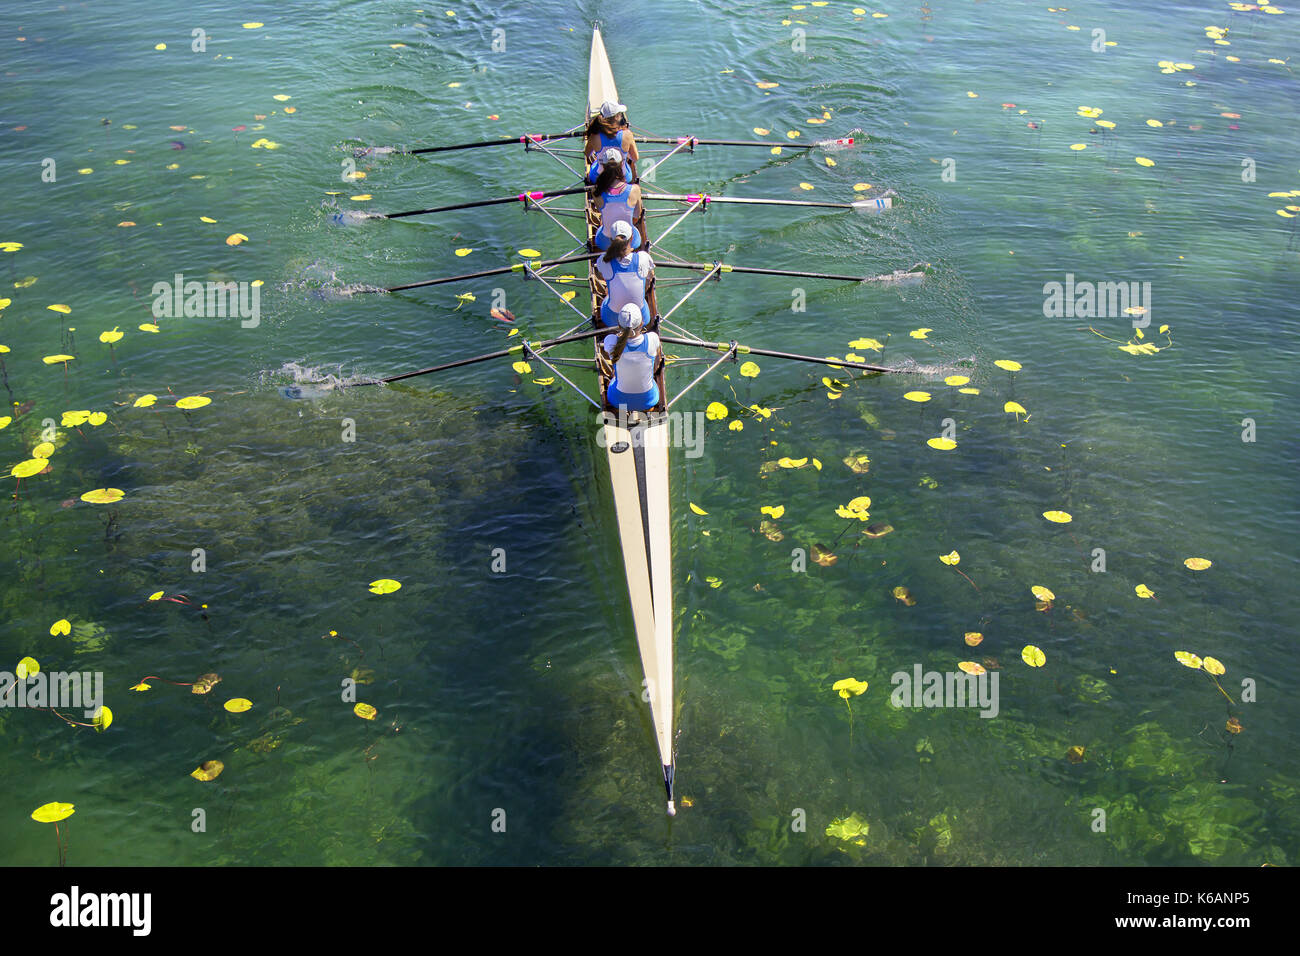 Ladies fours rowing team in race on the lake - Stock Image